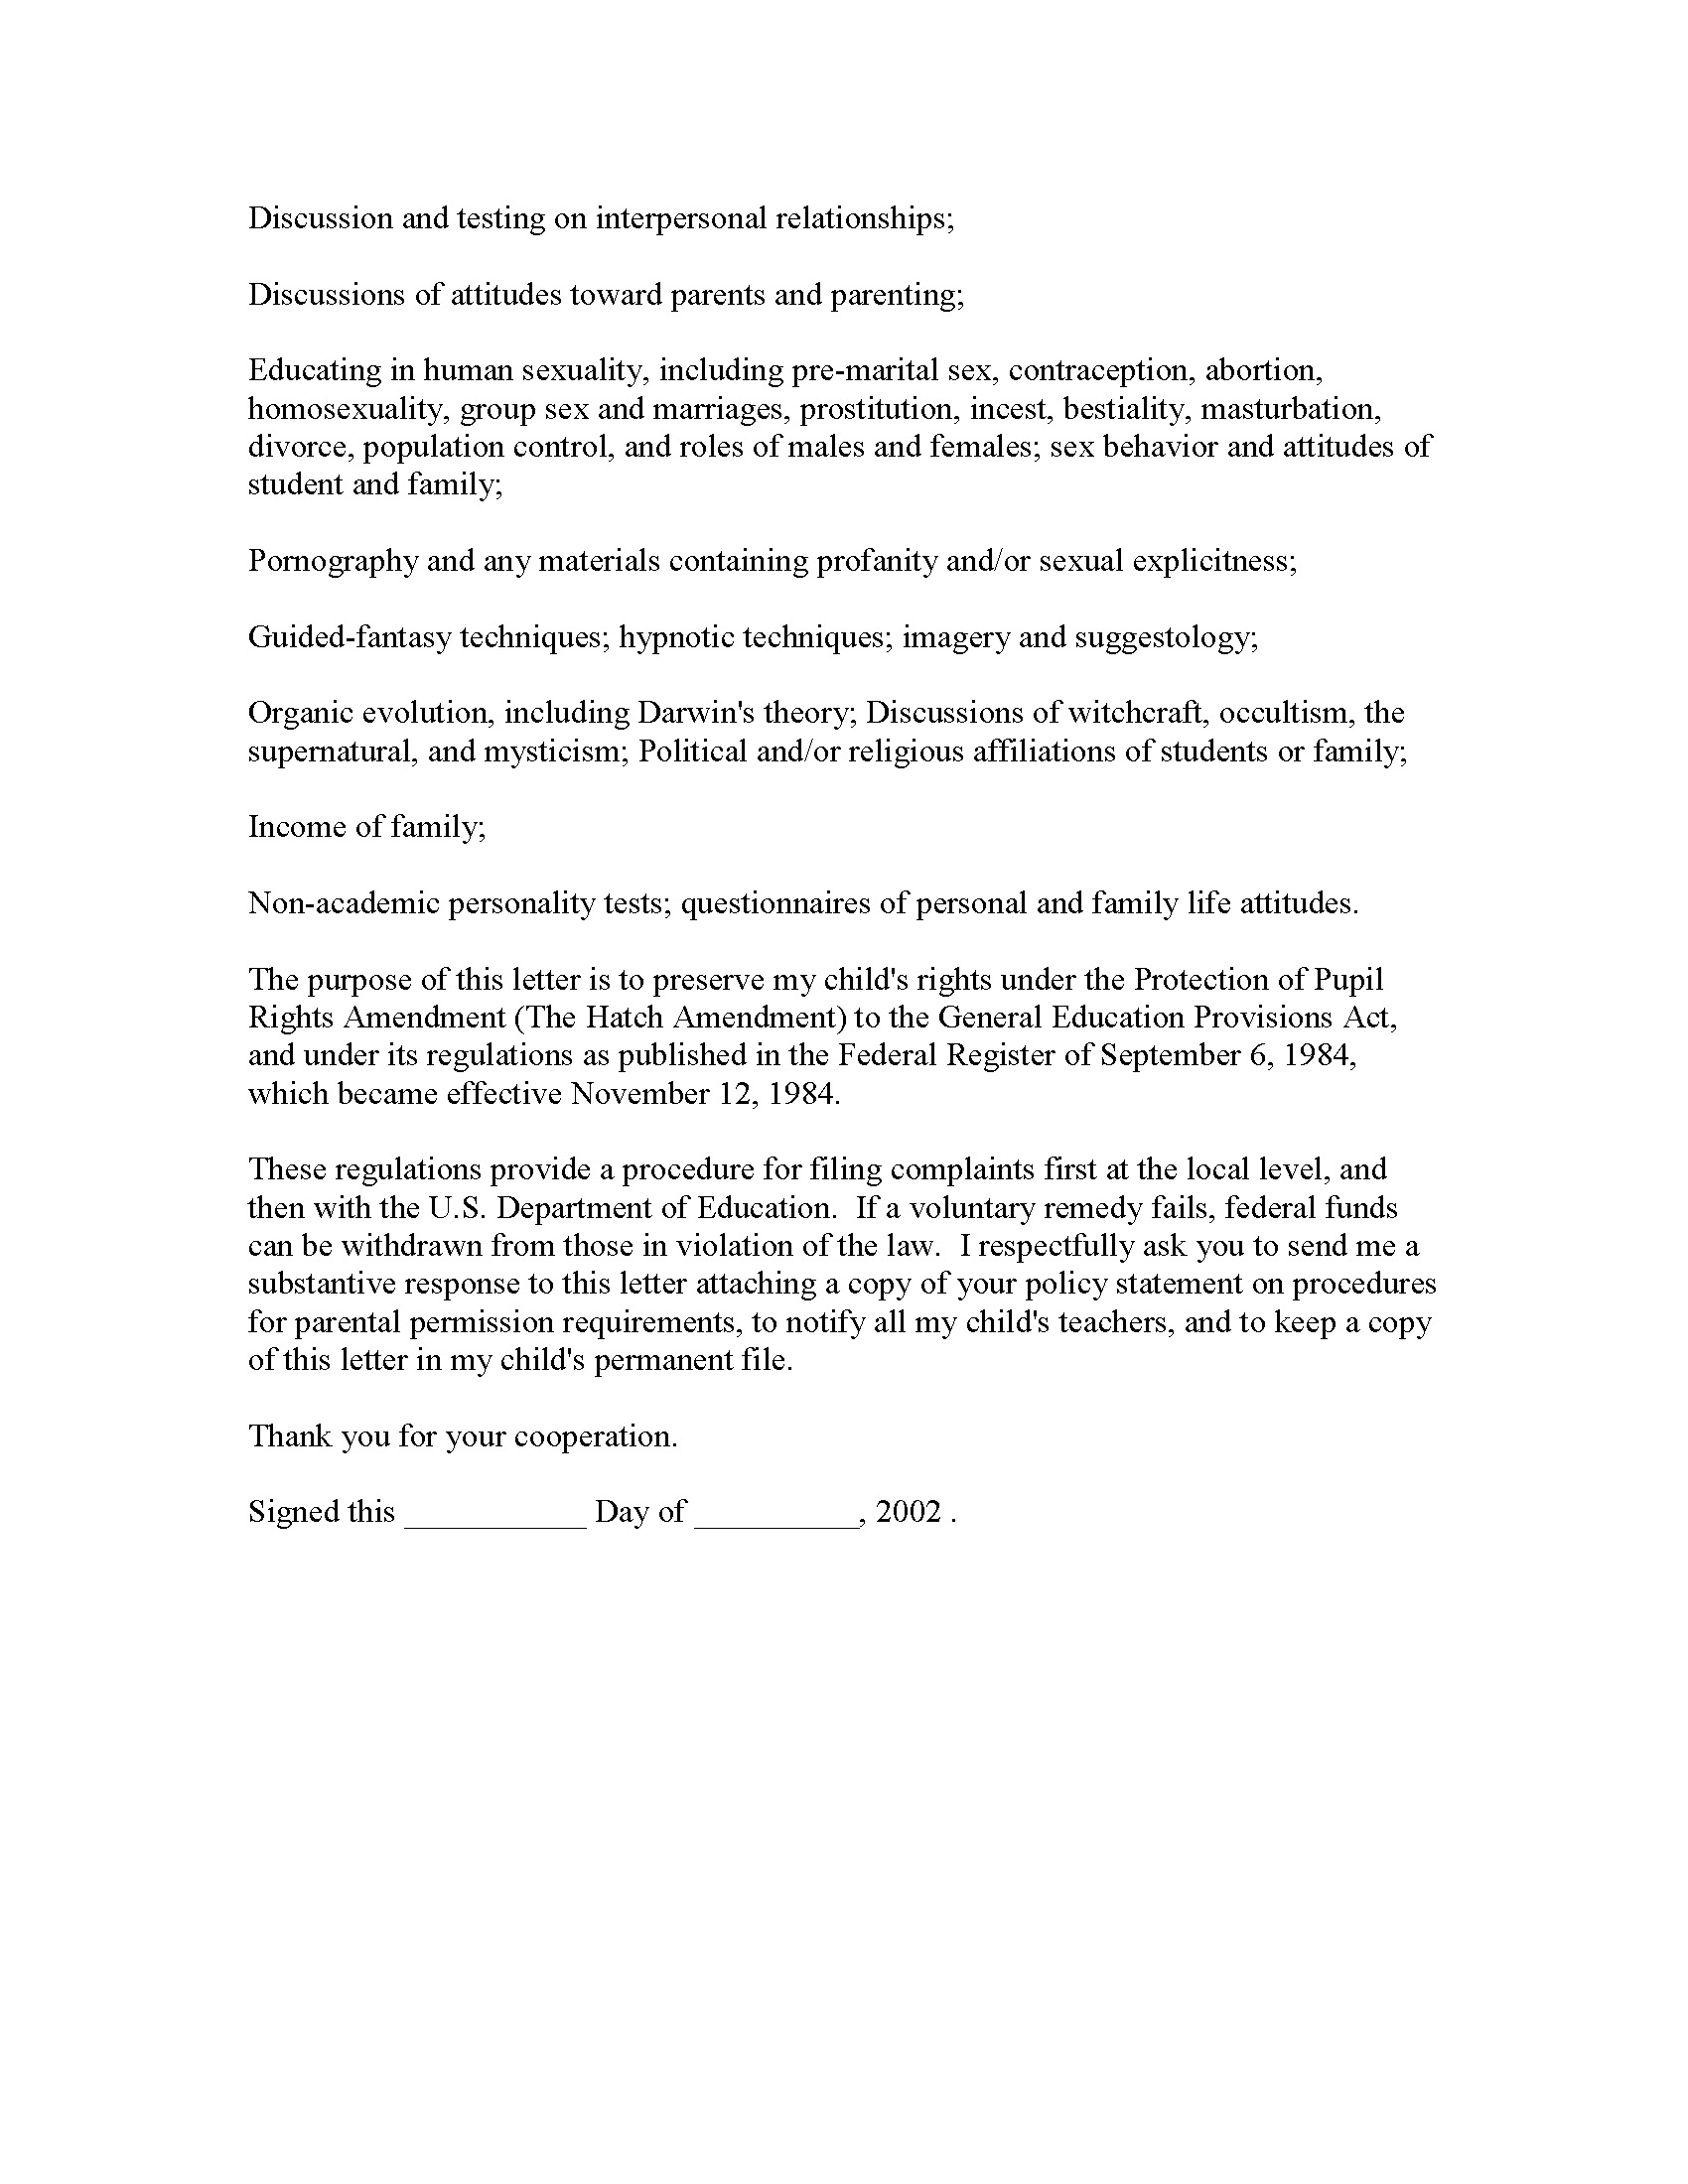 How To Write An Abstract Of Research Paper Essay About Media And Technology Network